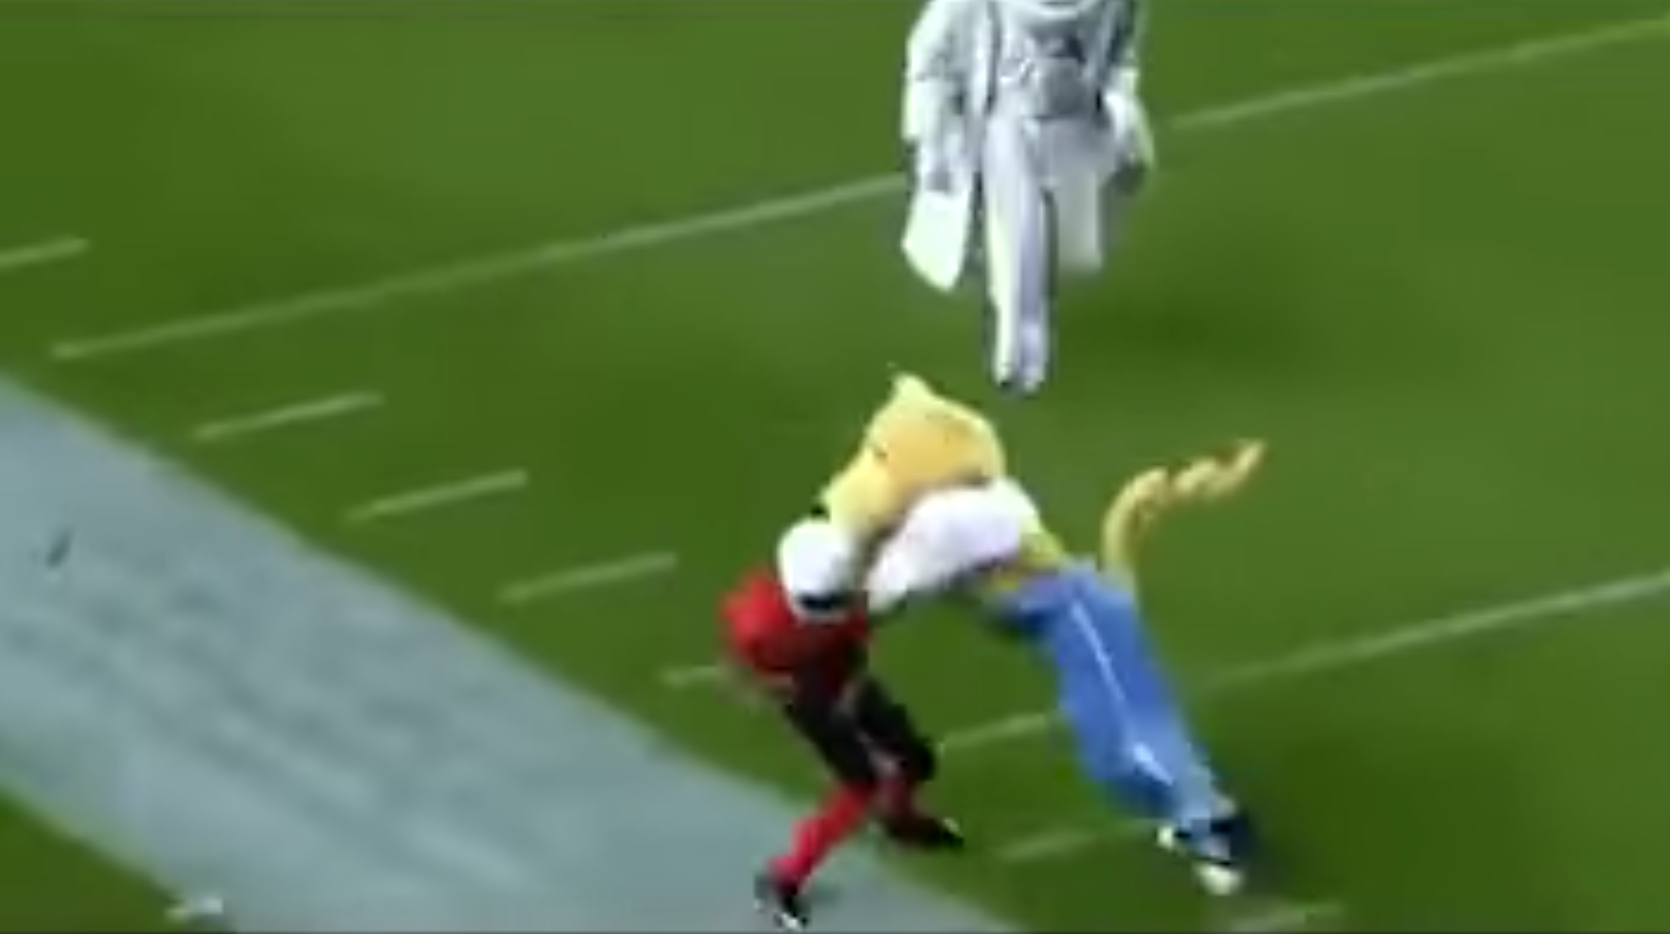 Mascots Playing Football Kids Get Destroyed Video Si Com